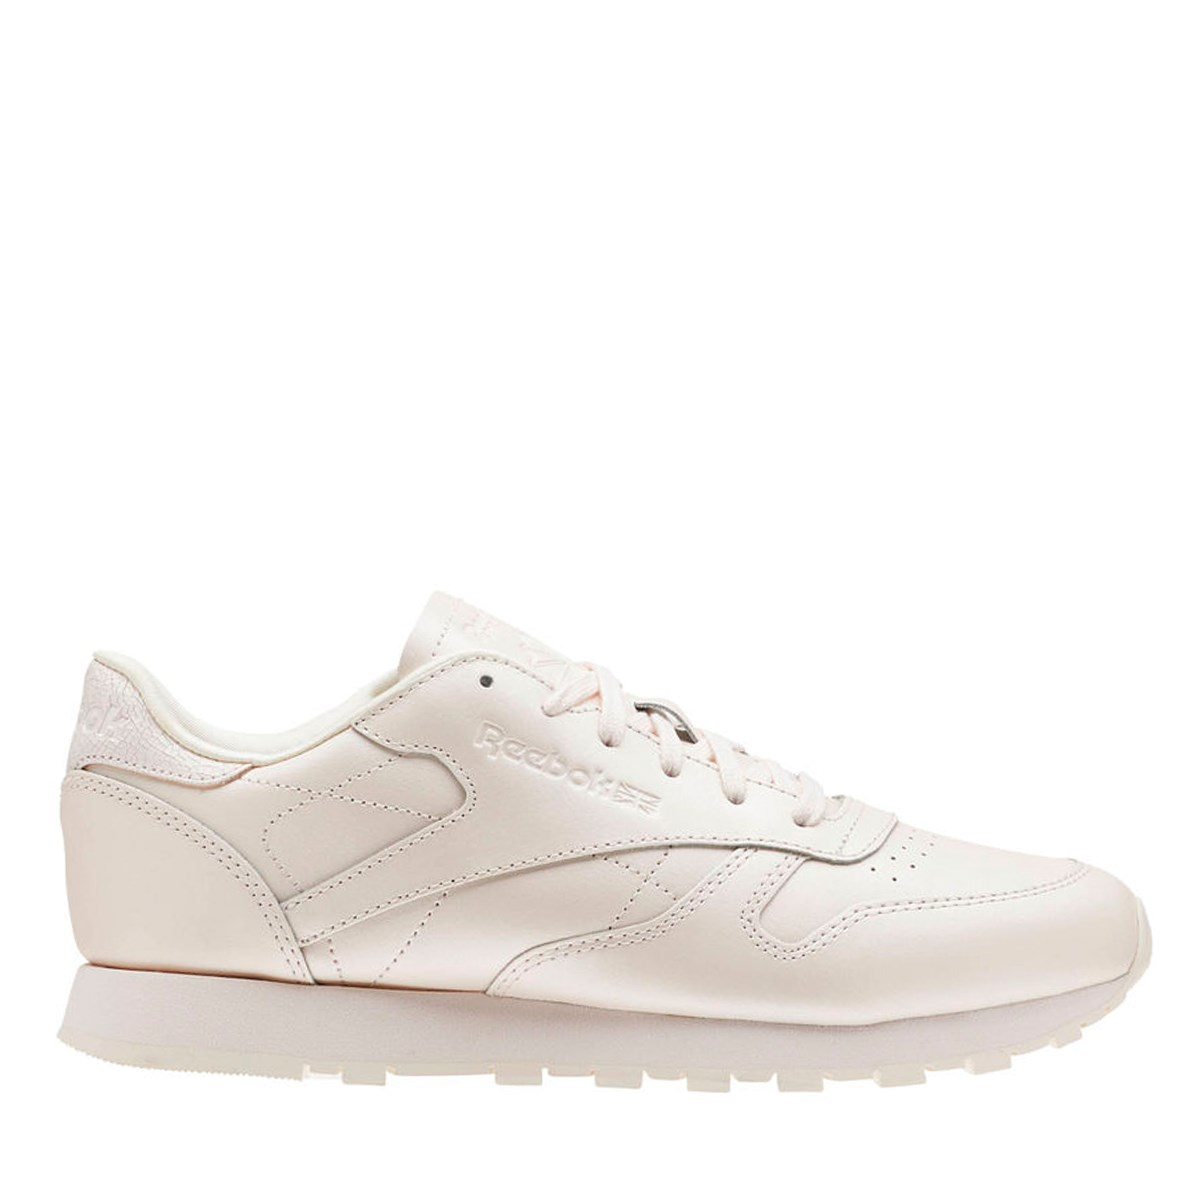 79c68ae6c1e Women s Classic Leather Sneaker in Light Pink. Previous. default view   ALT1  ALT2